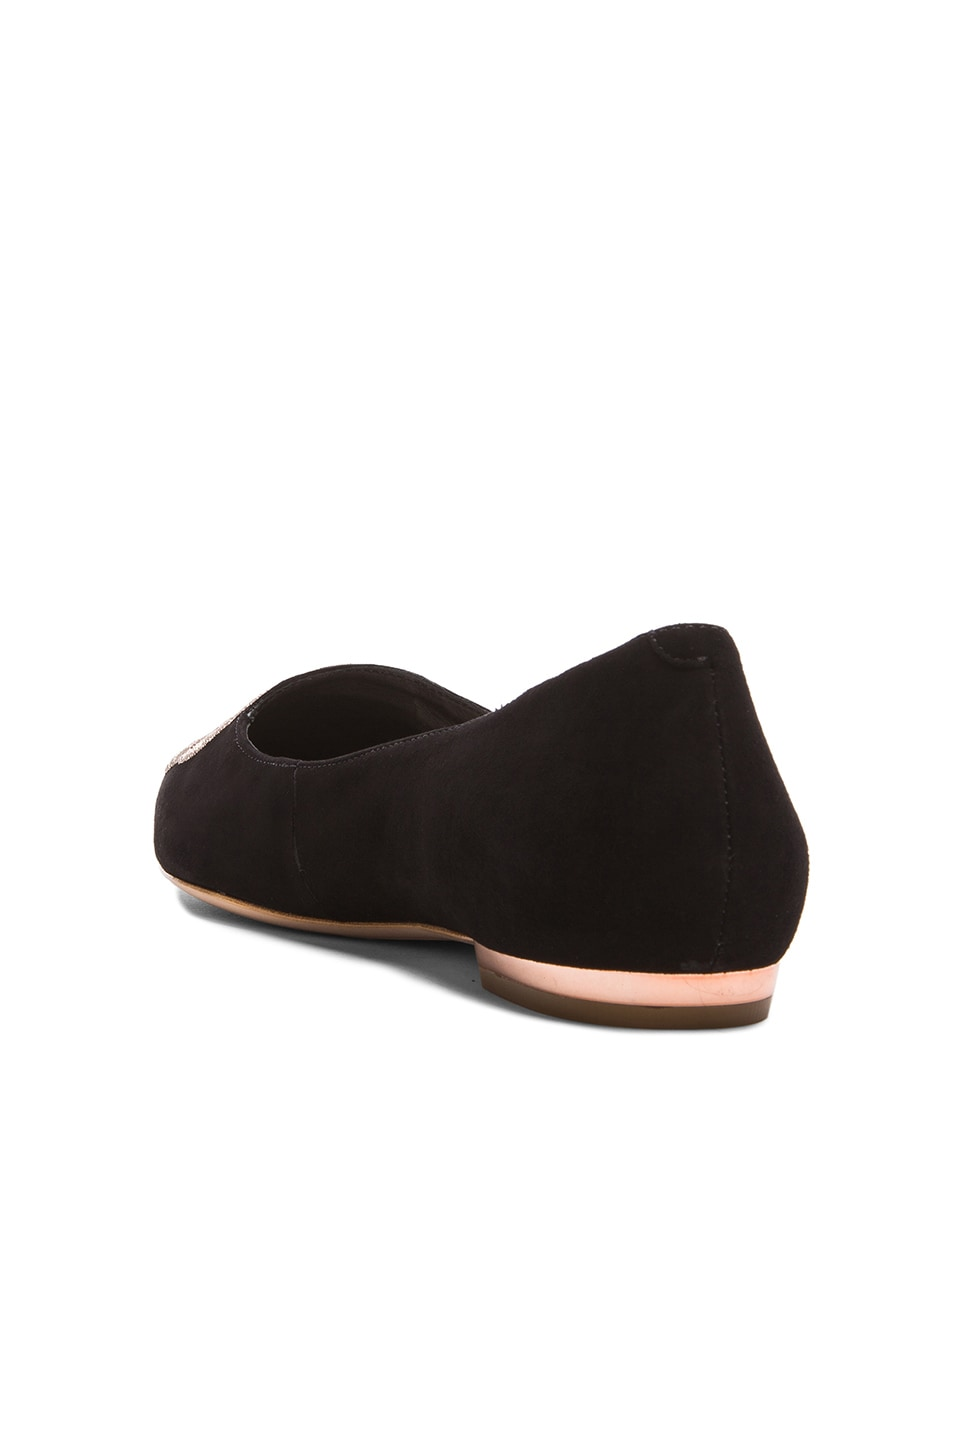 Image 4 of Sophia Webster Bibi Butterfly Suede Flats in Black & Rose Gold